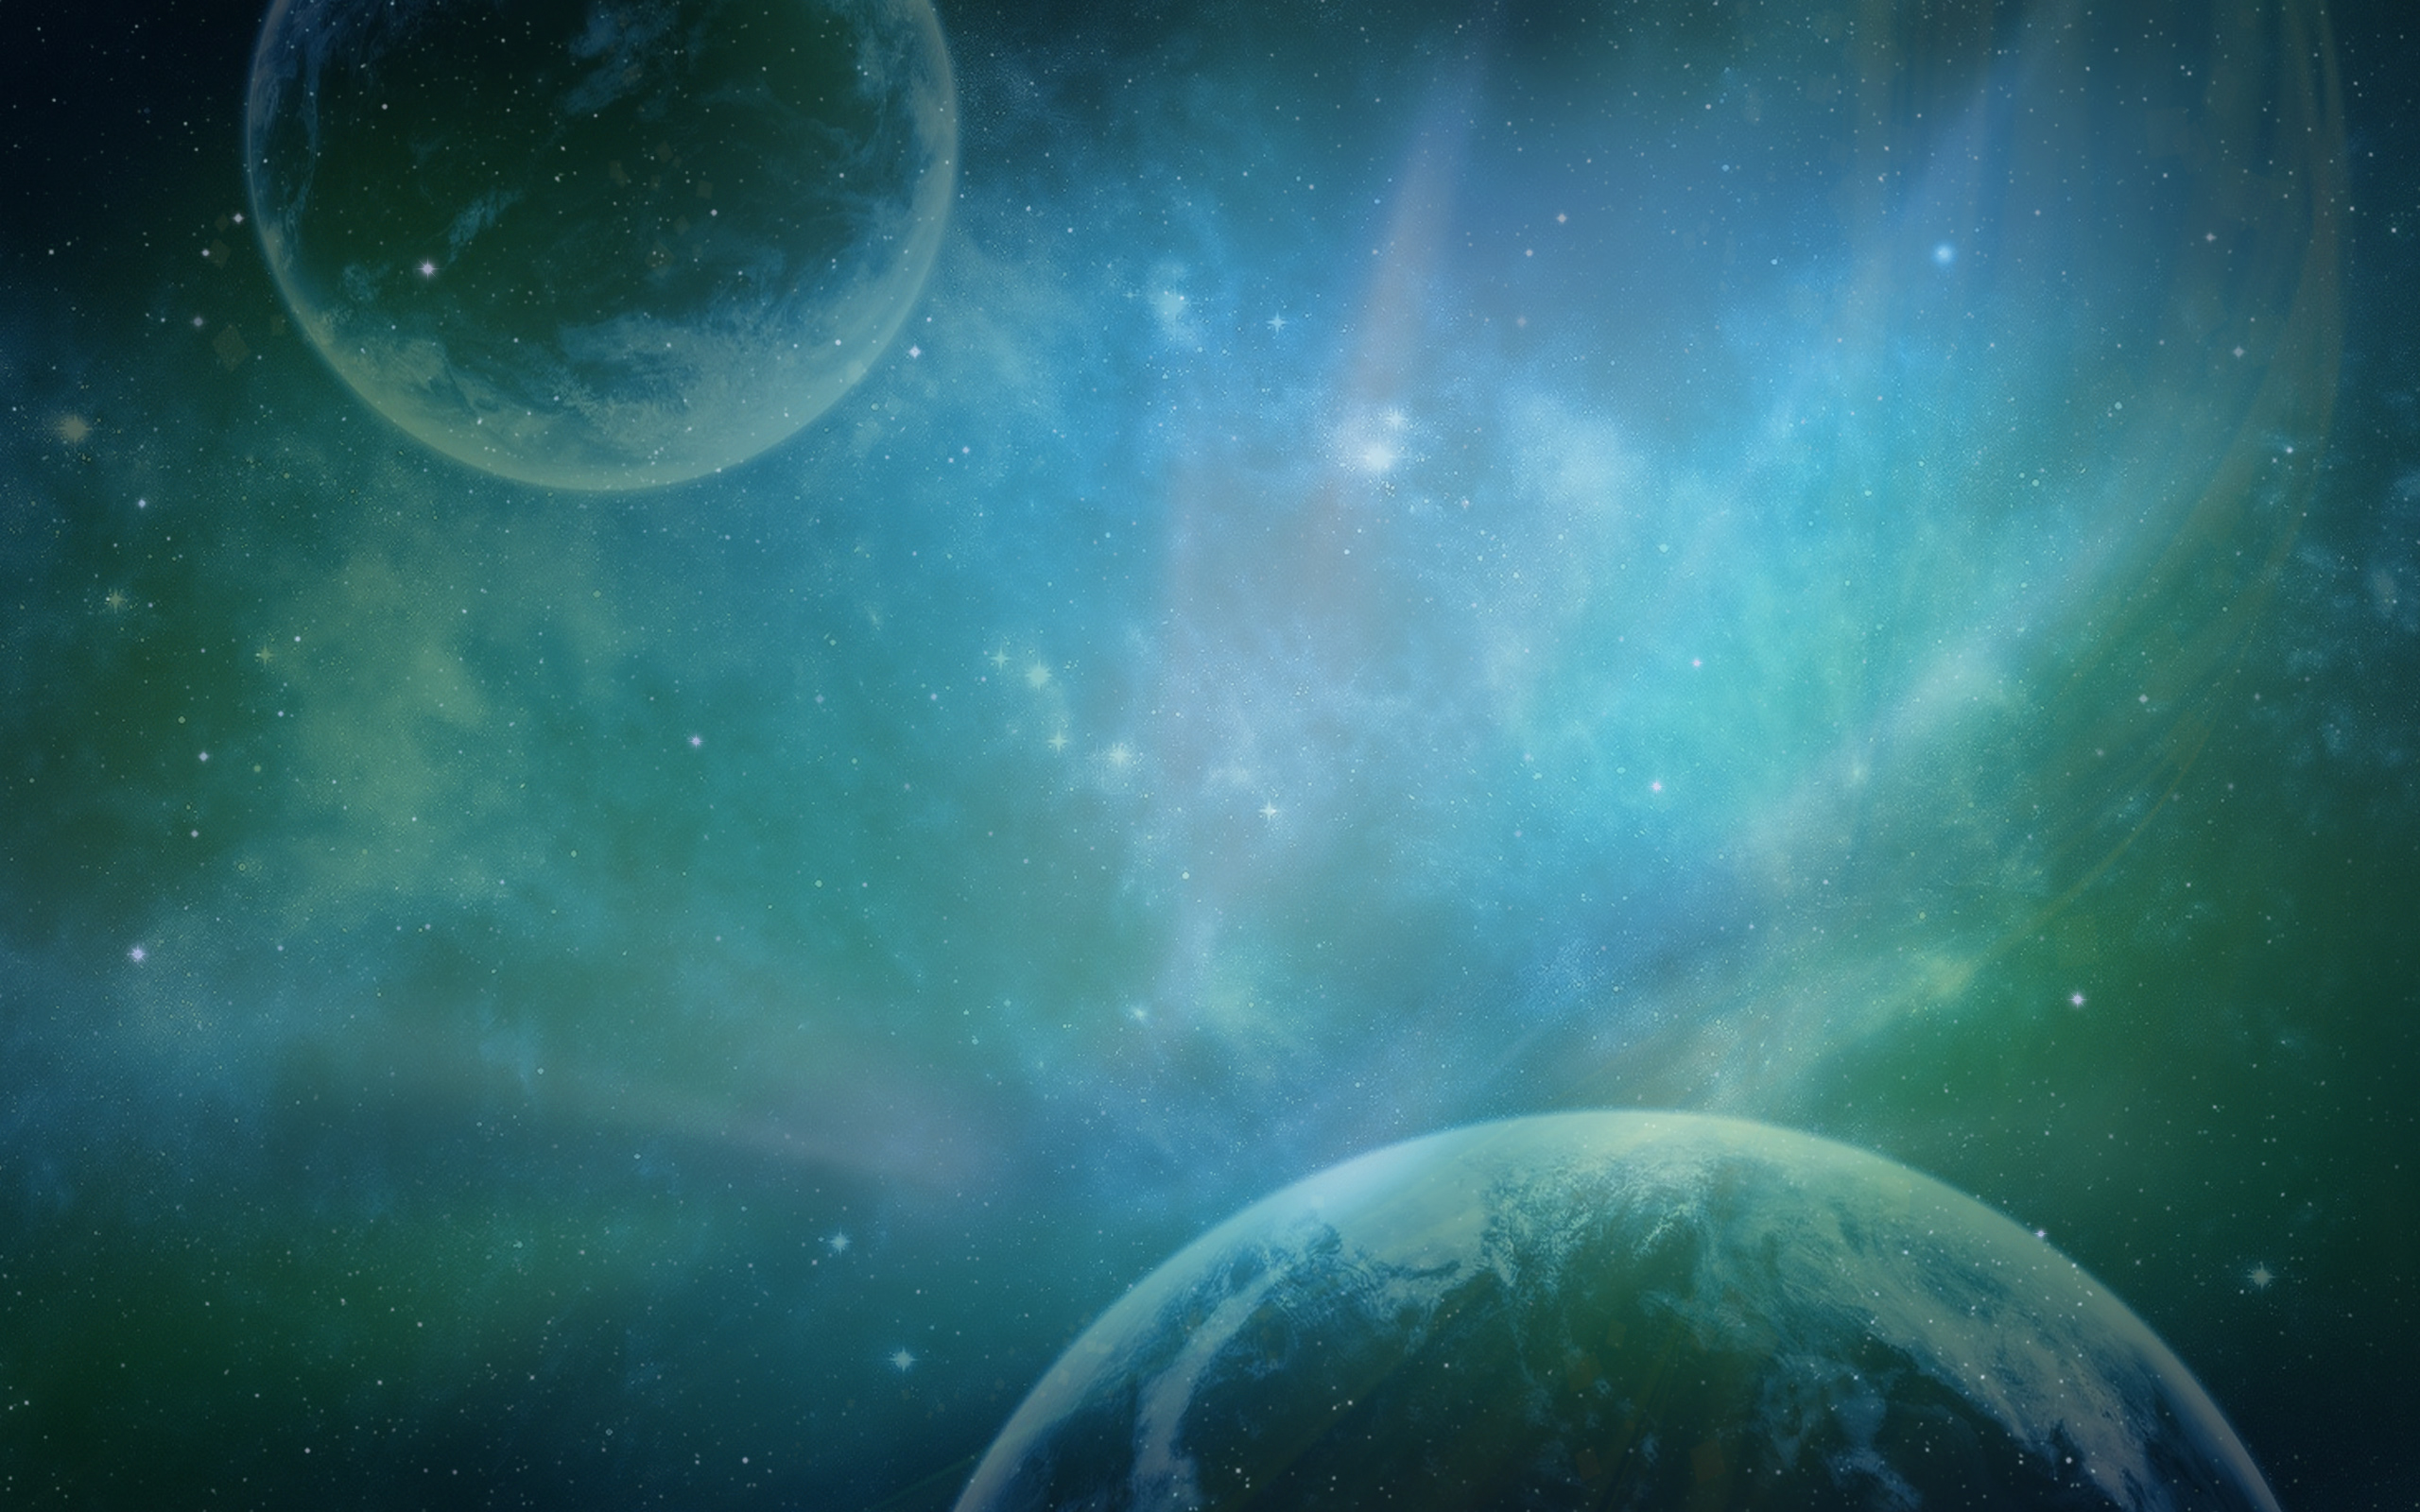 Images Of Space Wallpaper 17 Calto